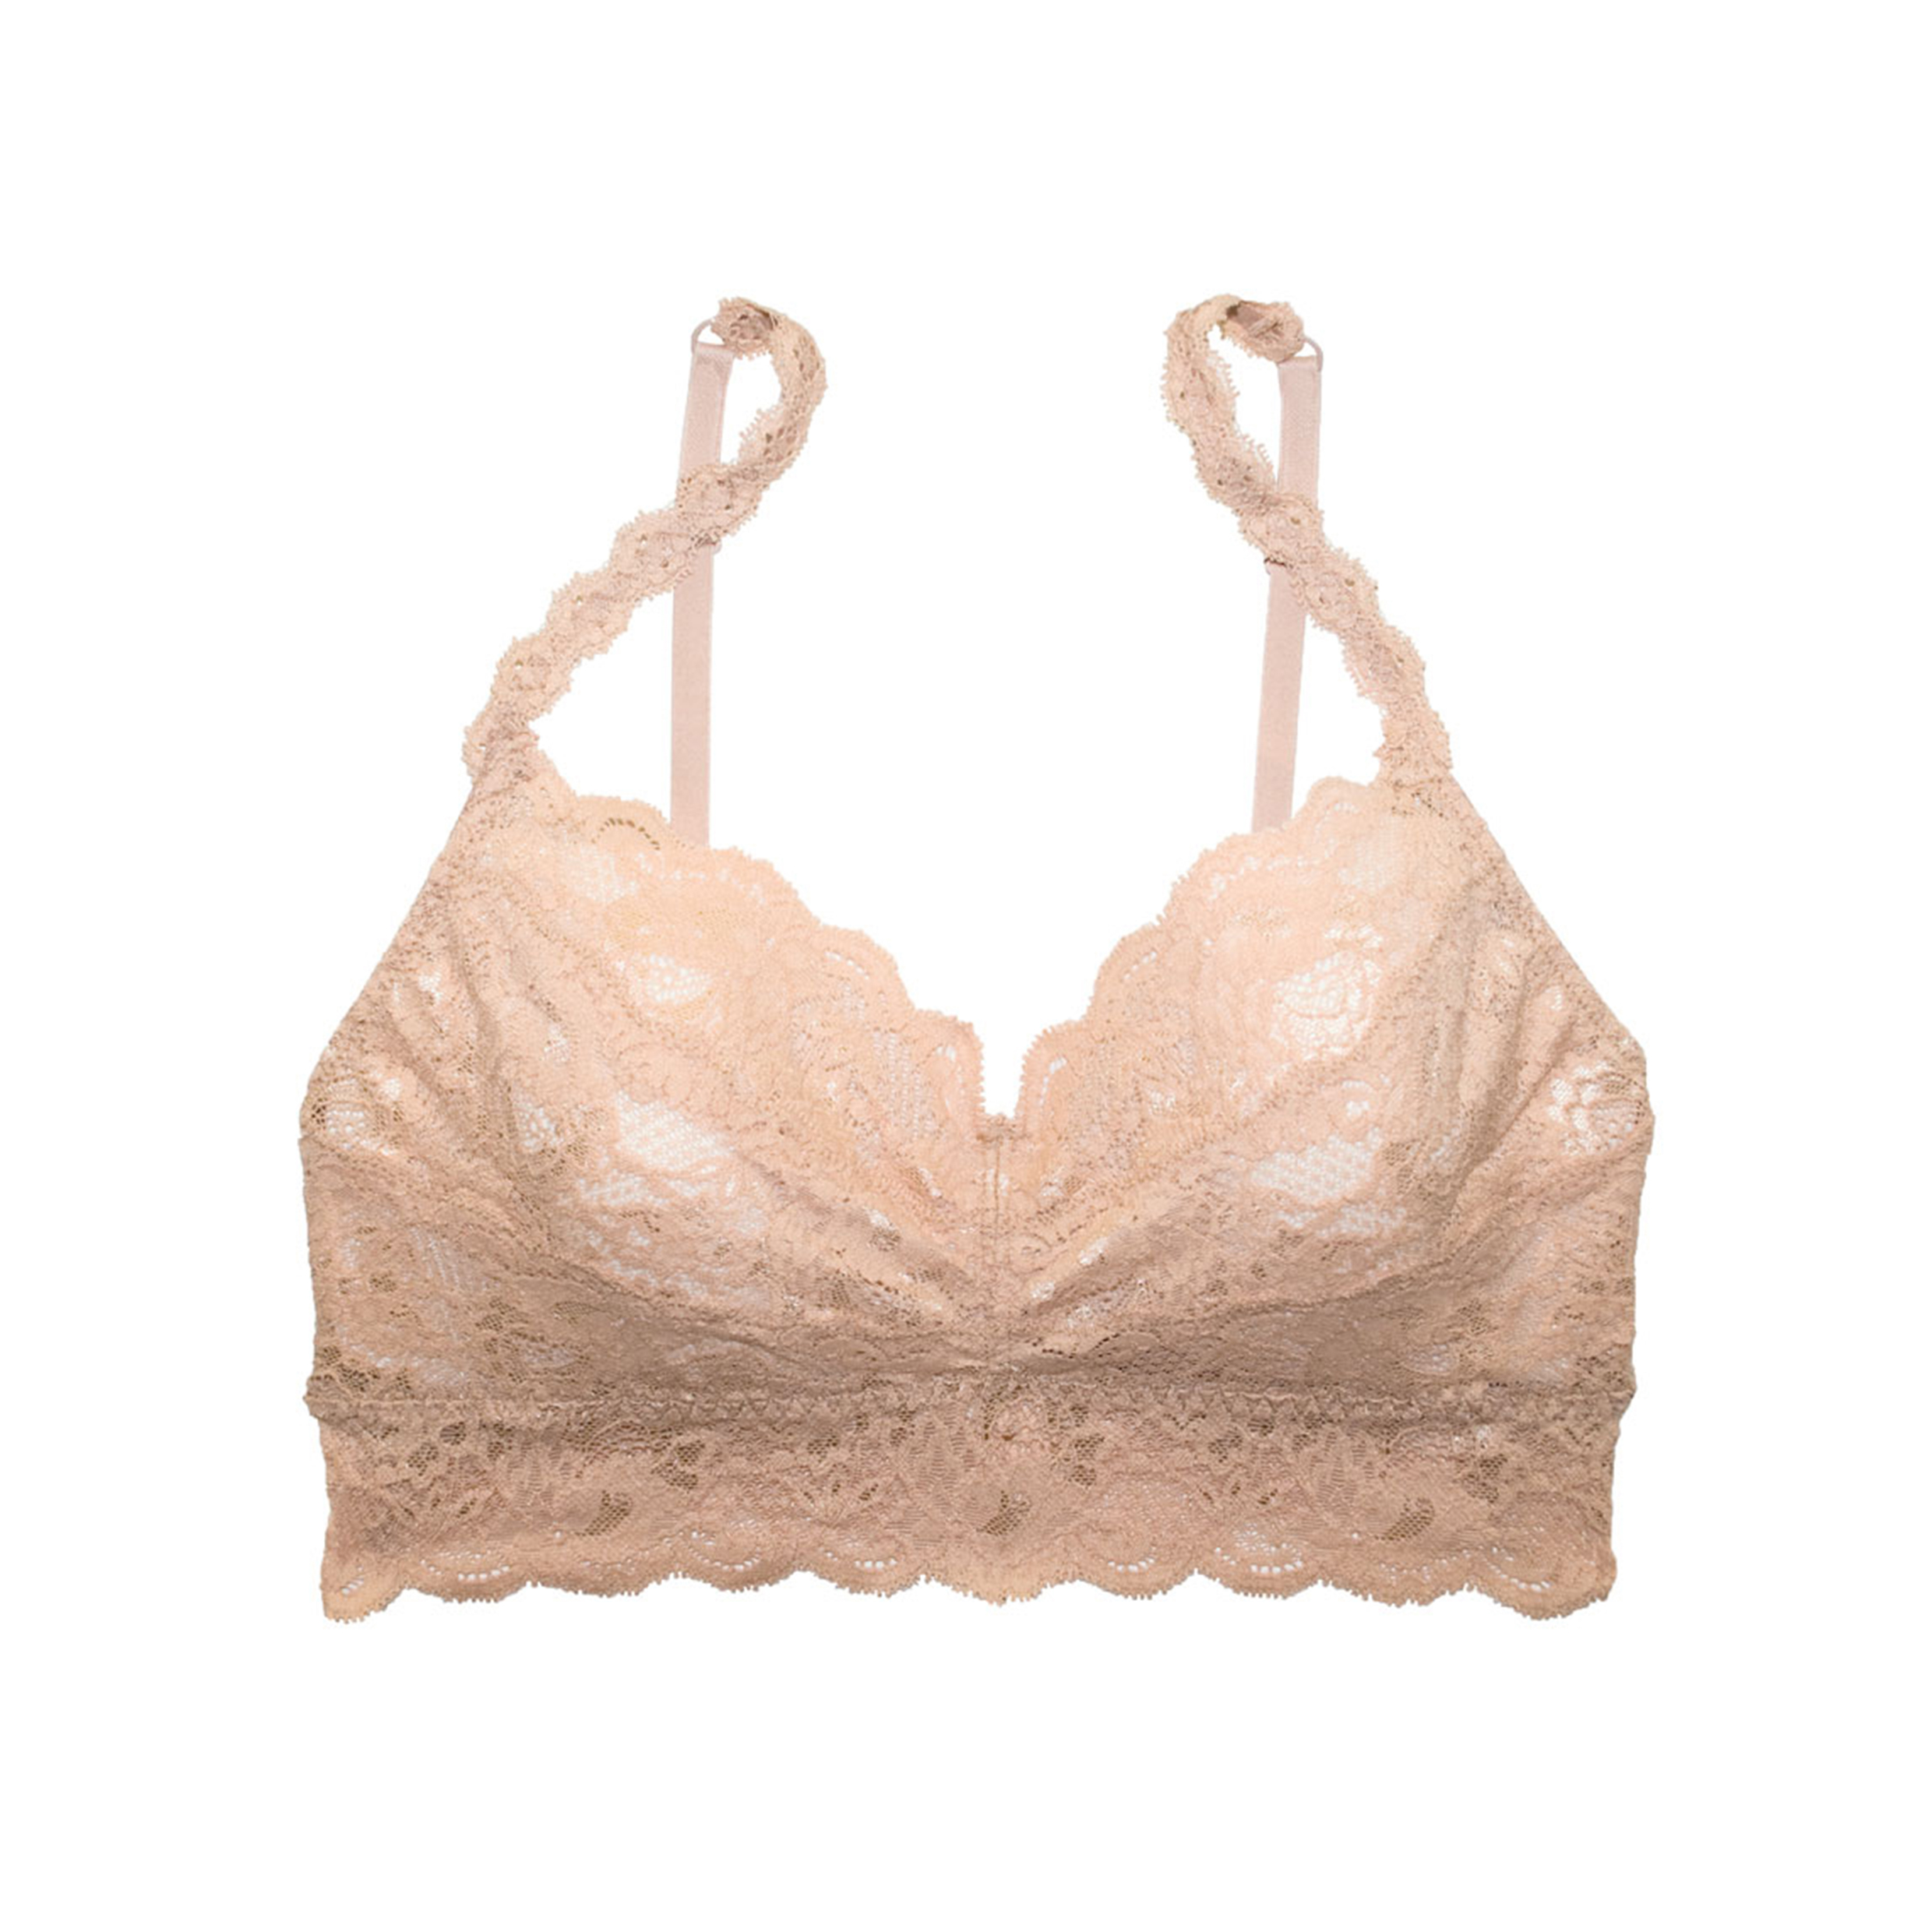 79b159def5 COSABELLA Never Say Never Sweetie Bra - Blush • Strip Boutique